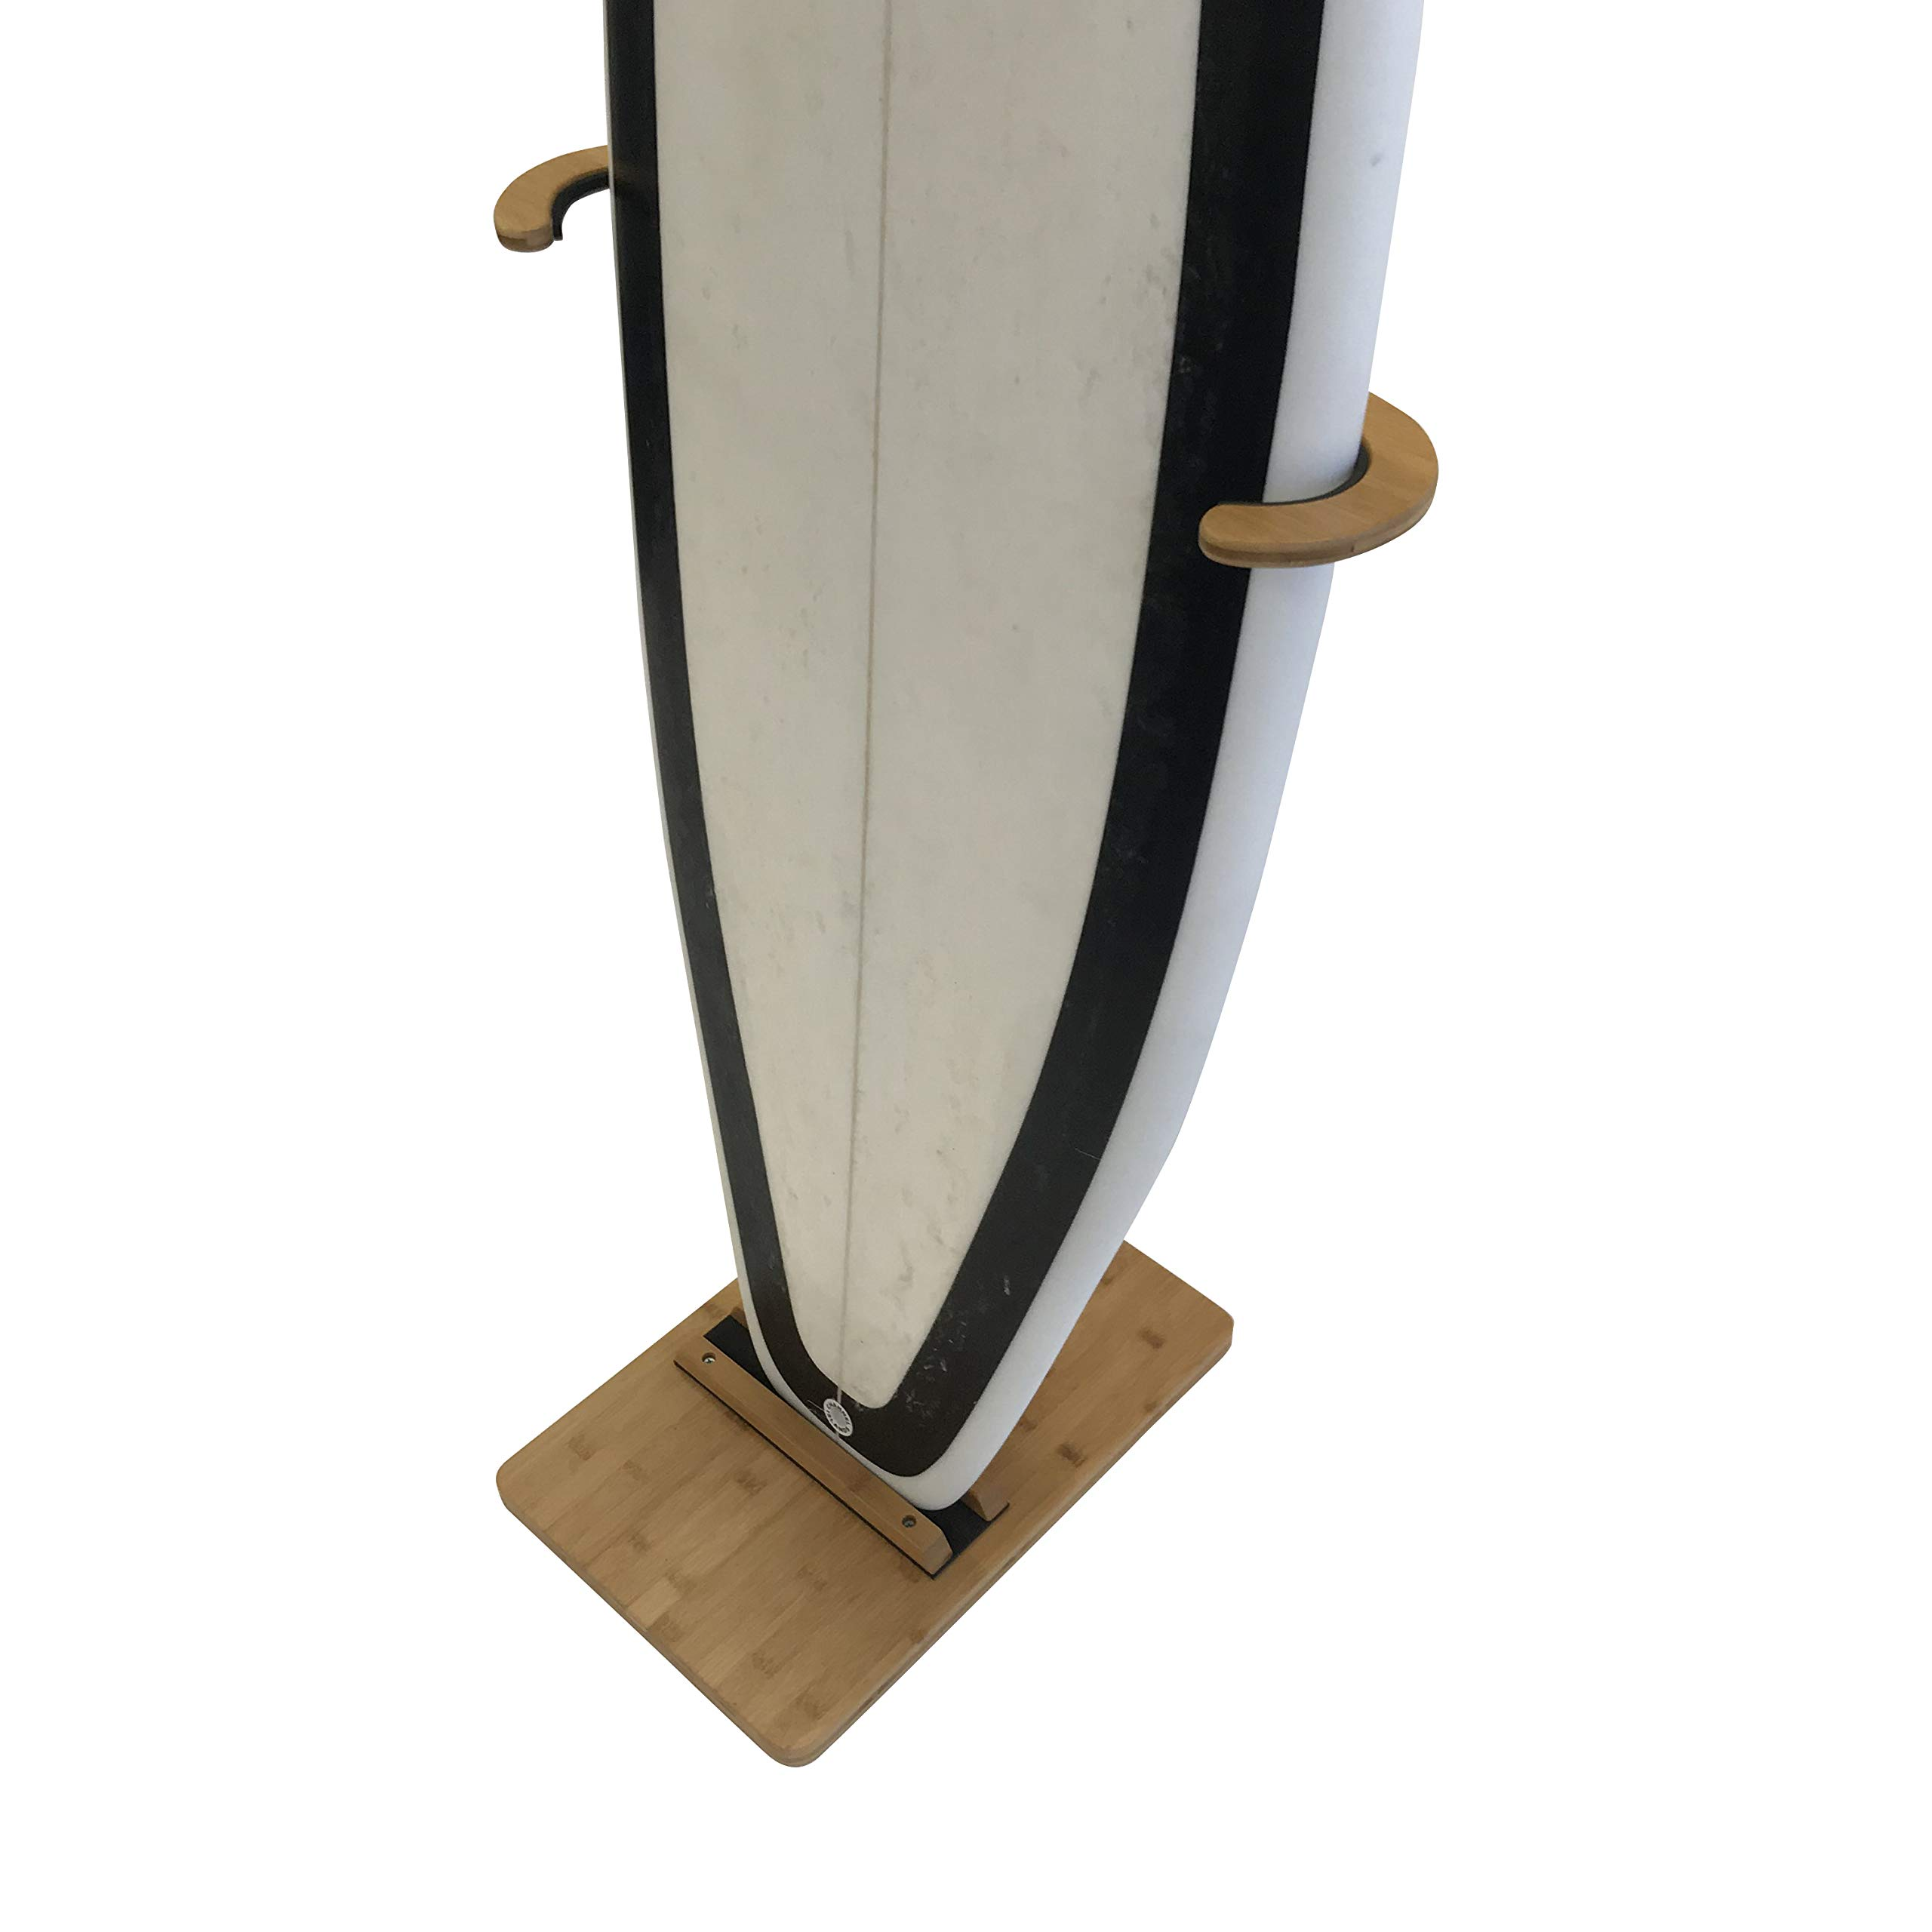 Cor Surf Bamboo Surfboard Stand   Premium Standing Rack to Display Your Board